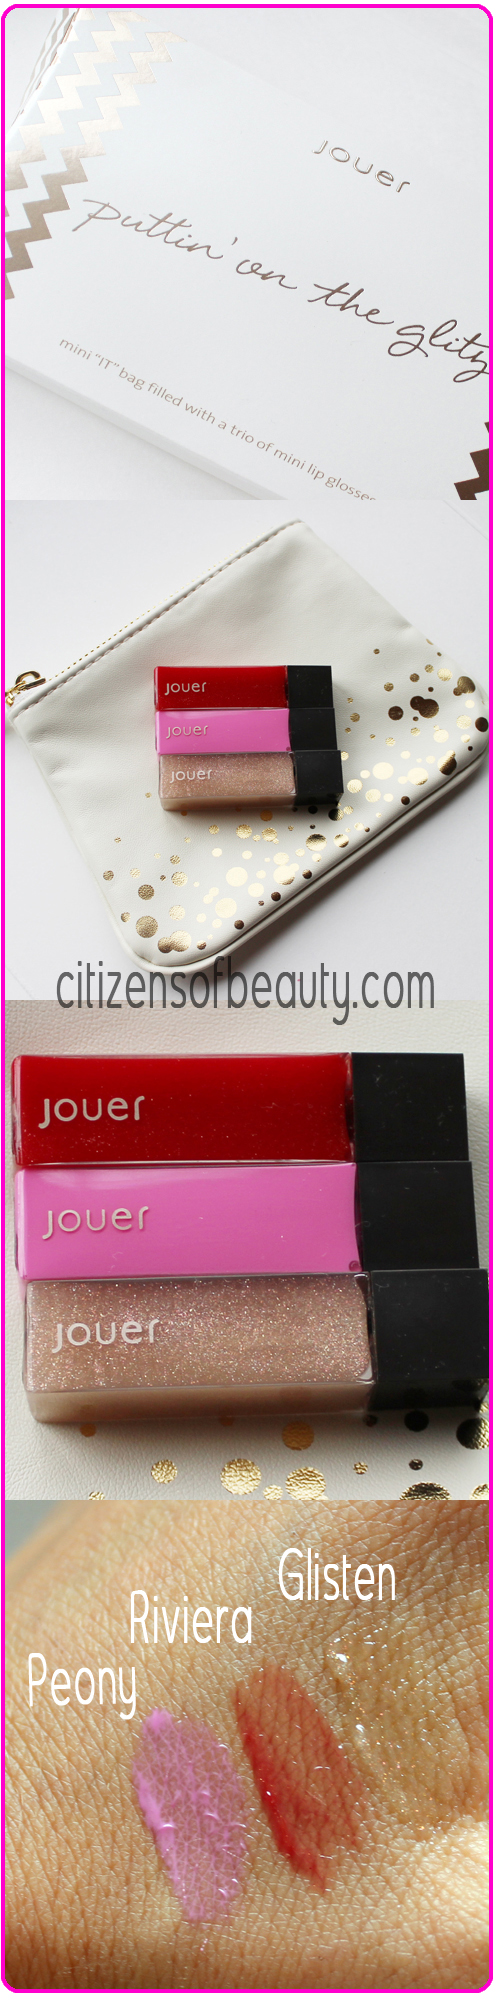 Jouer_Cosmetics_Holiday_2013 copy